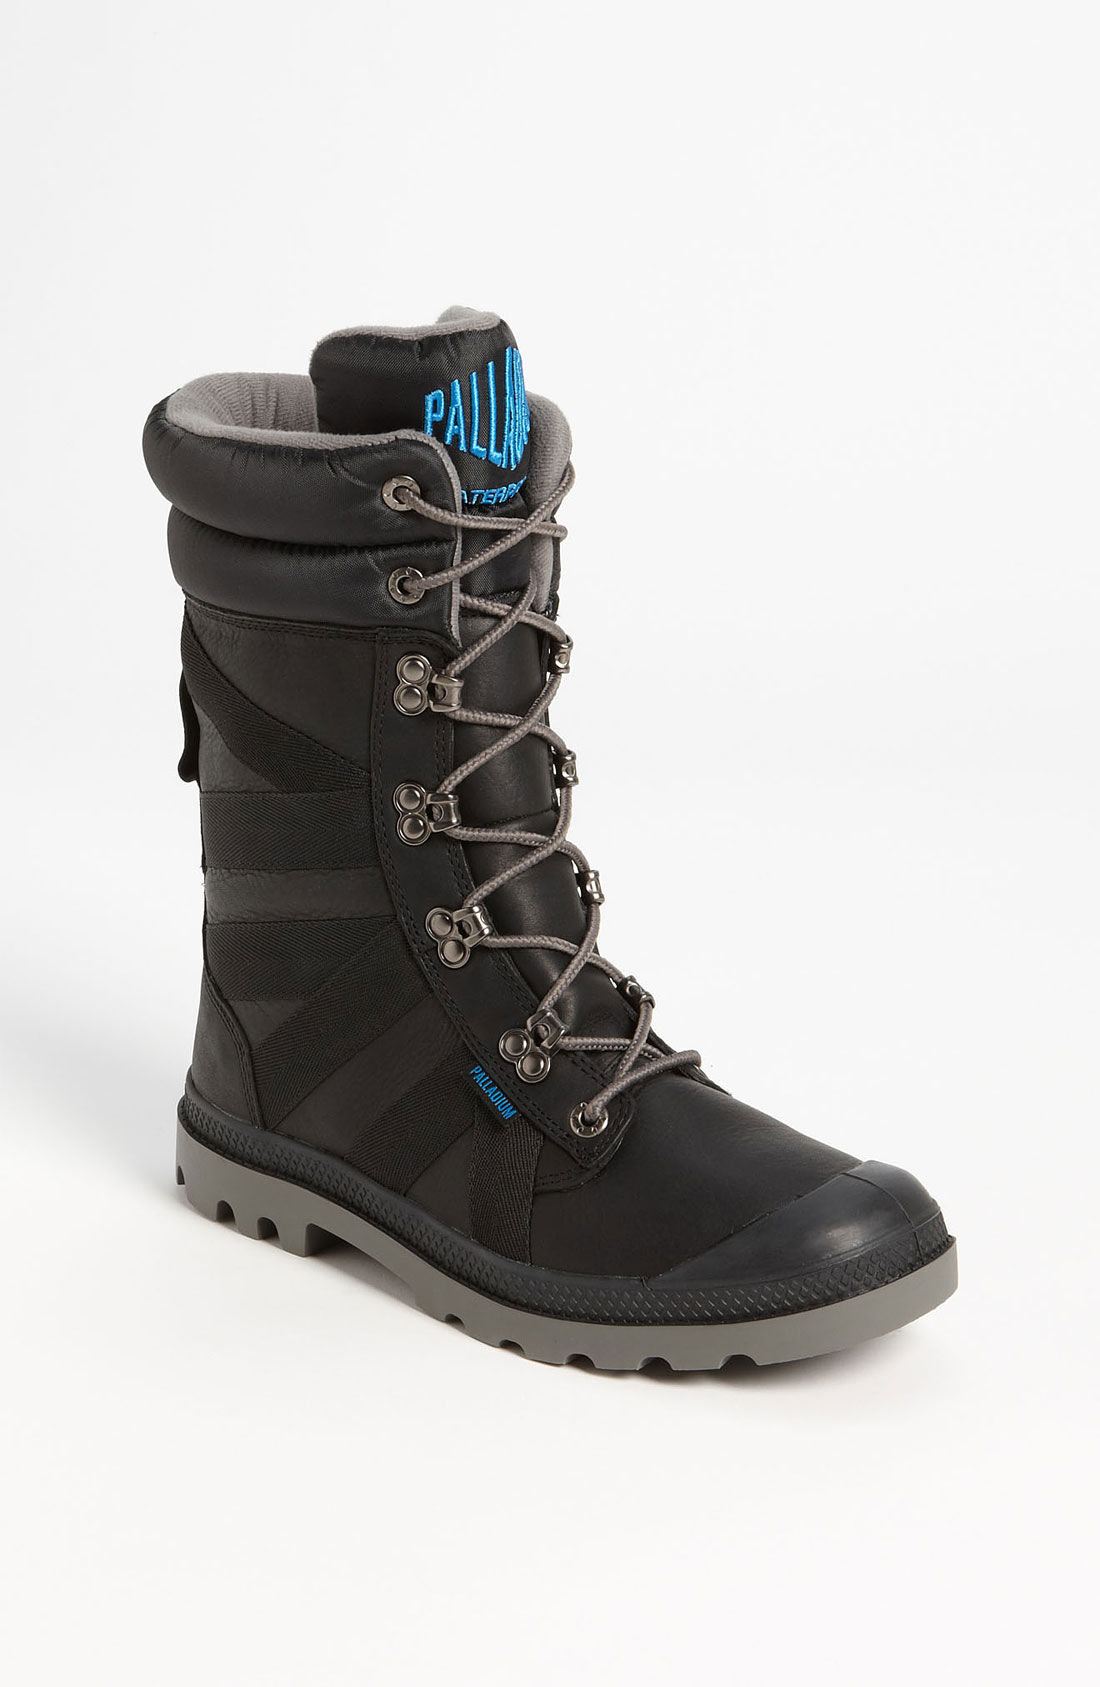 Palladium Pampa Snow Boot In Black For Men Lyst